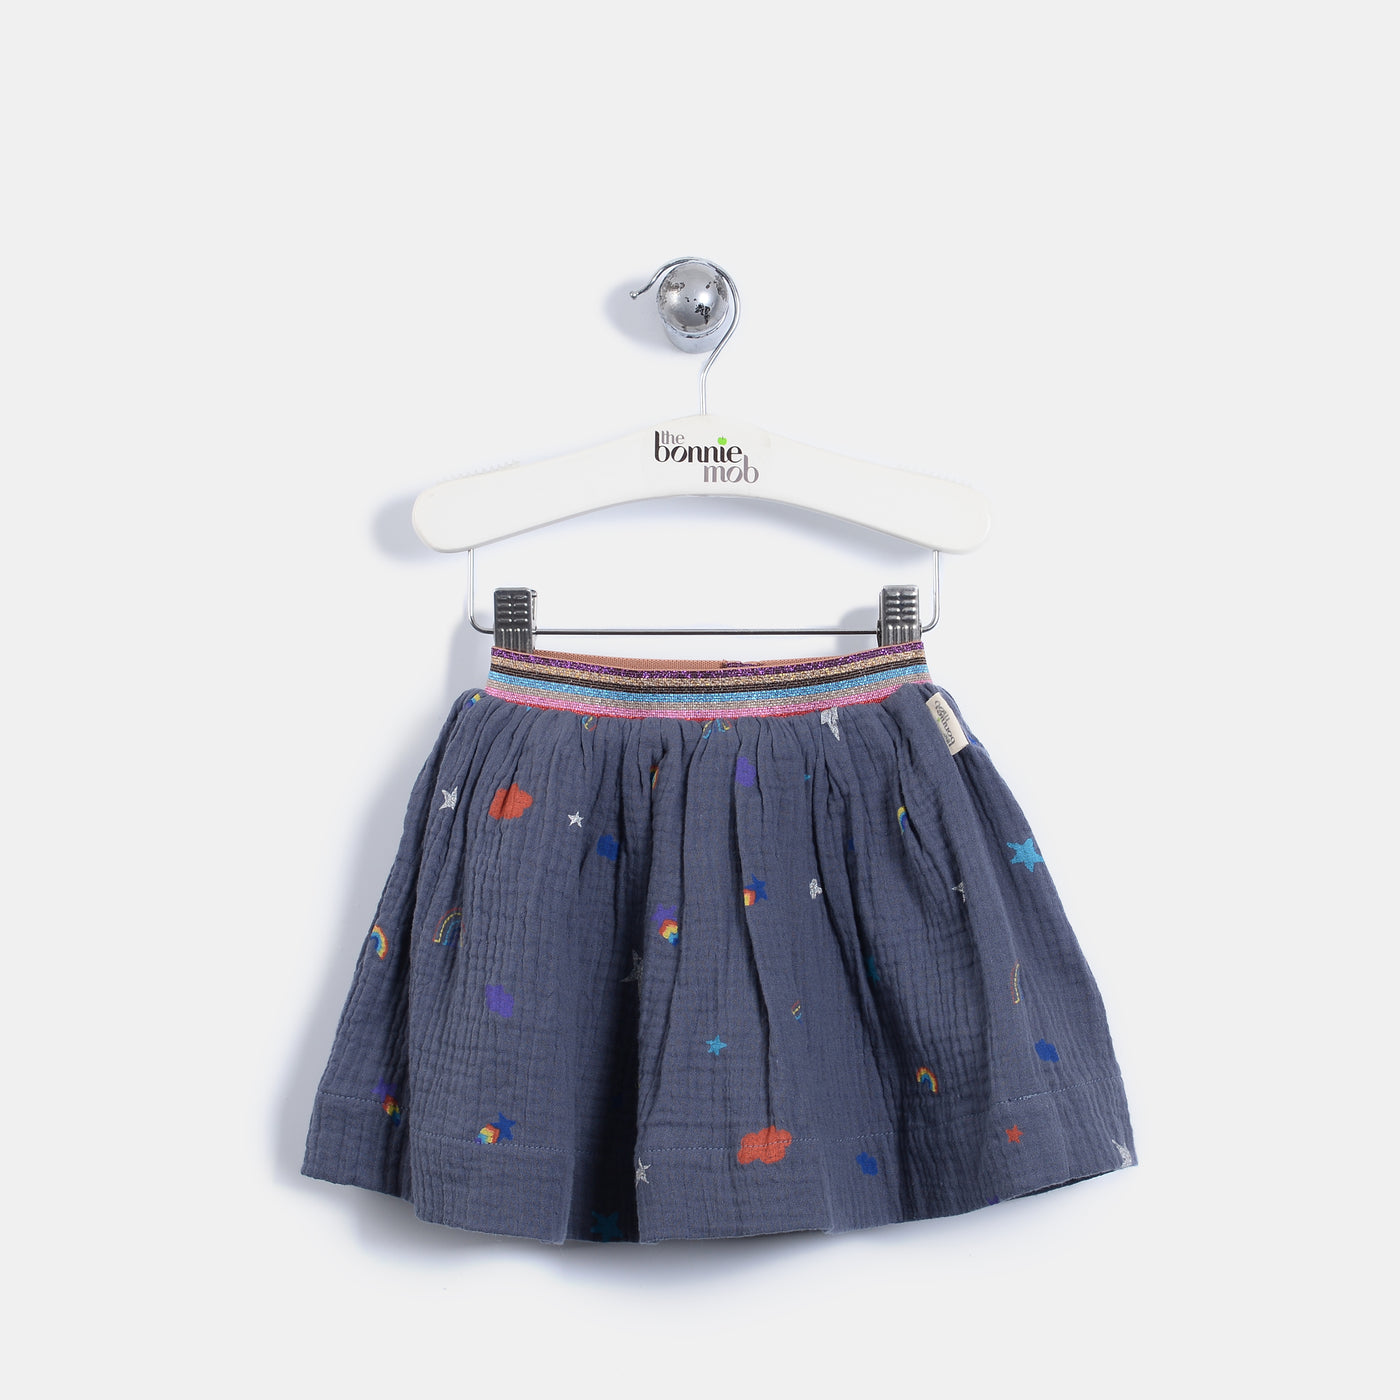 L-BRIELLE - Rainbow And Star Print Skirt - Baby Girl - Rainbow and star print